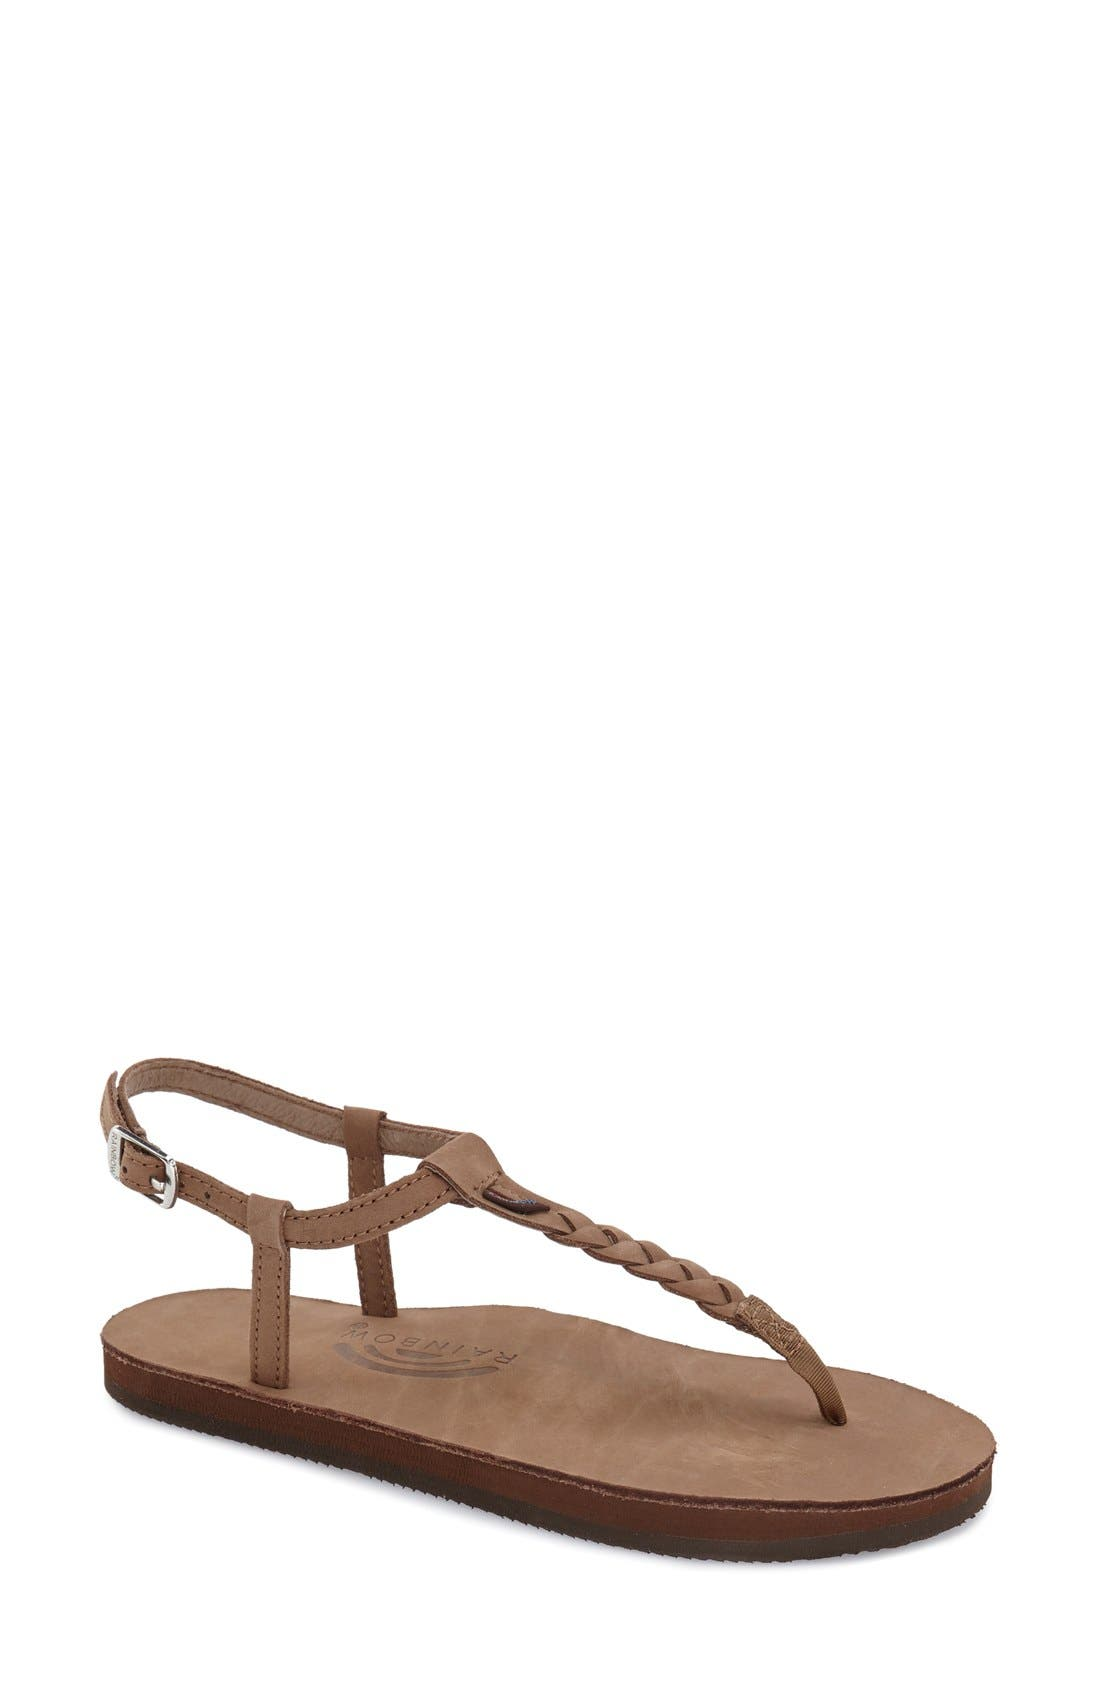 'T-Street' Braided T-Strap Sandal,                         Main,                         color,